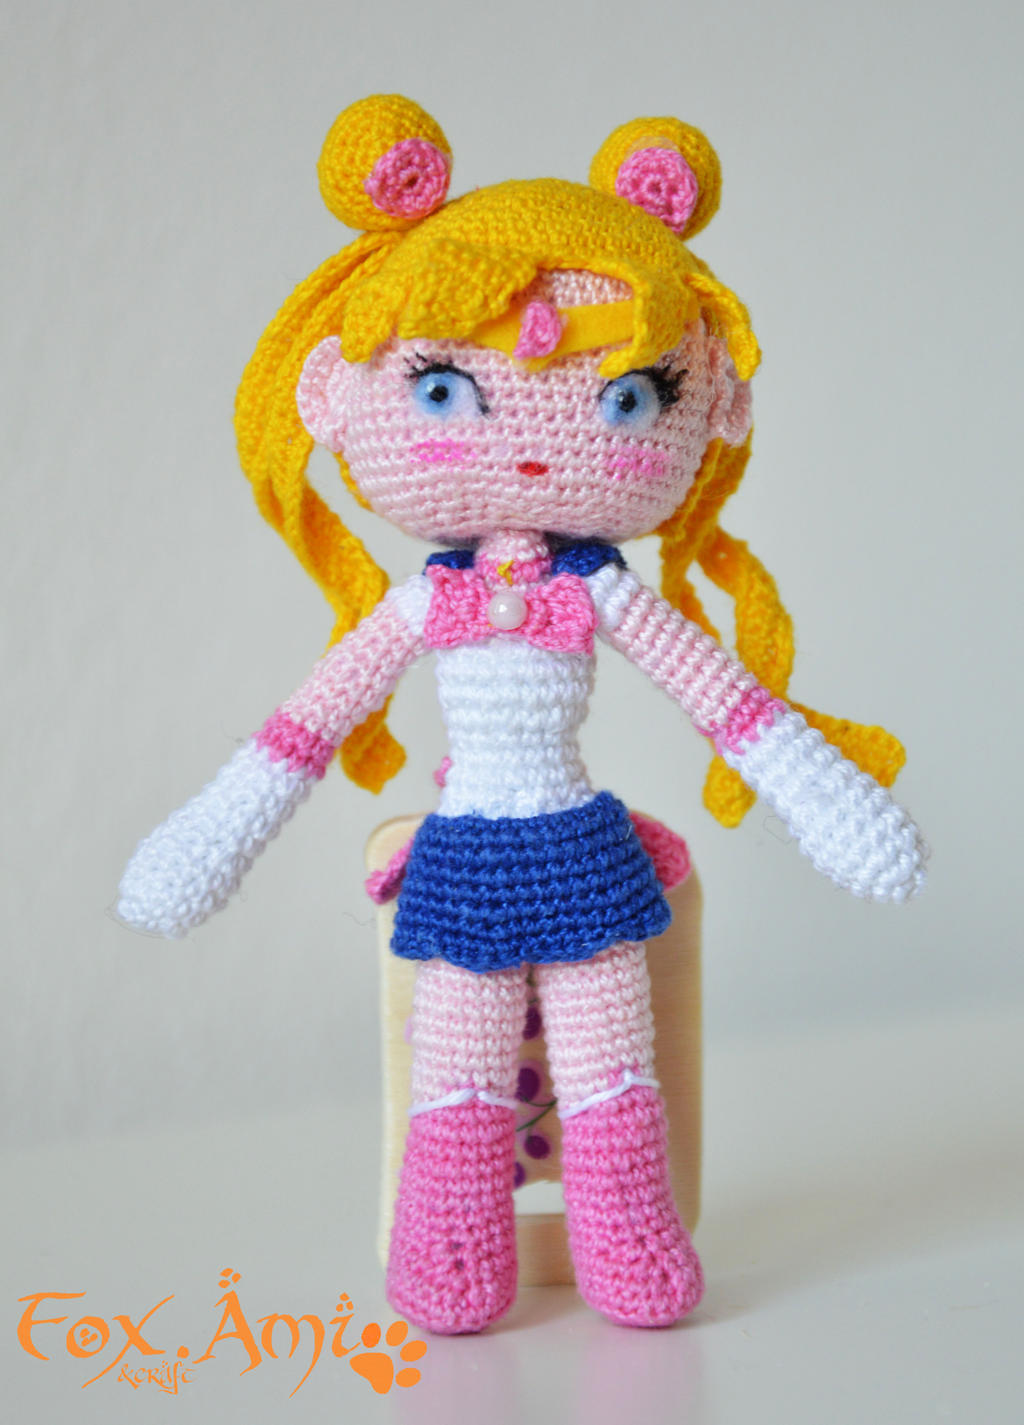 Moon Amigurumi Pattern Free : Sailor Moon amigurumi by FoxAmi-craft on DeviantArt